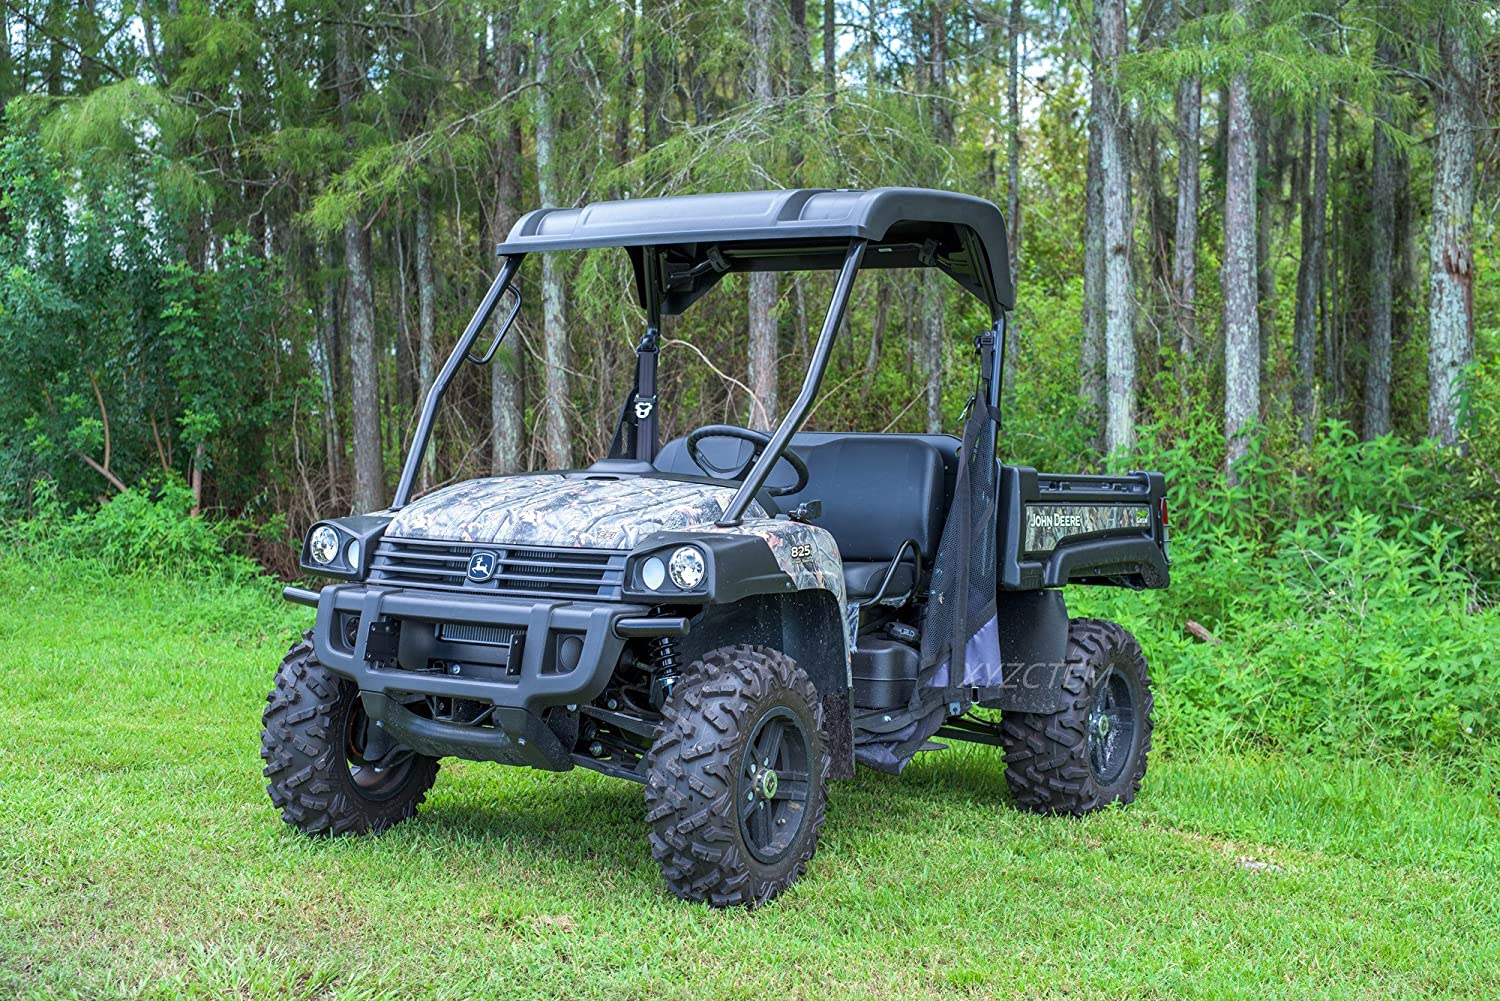 114.17 x 59.06 x 74.80 Snow XYZCTEM UTV Cover with Heavy Duty Oxford Waterproof Material 290 150 190cm Dust Hail Protects UTV From Rain Sleet Camo Included Storage Bag and Sun